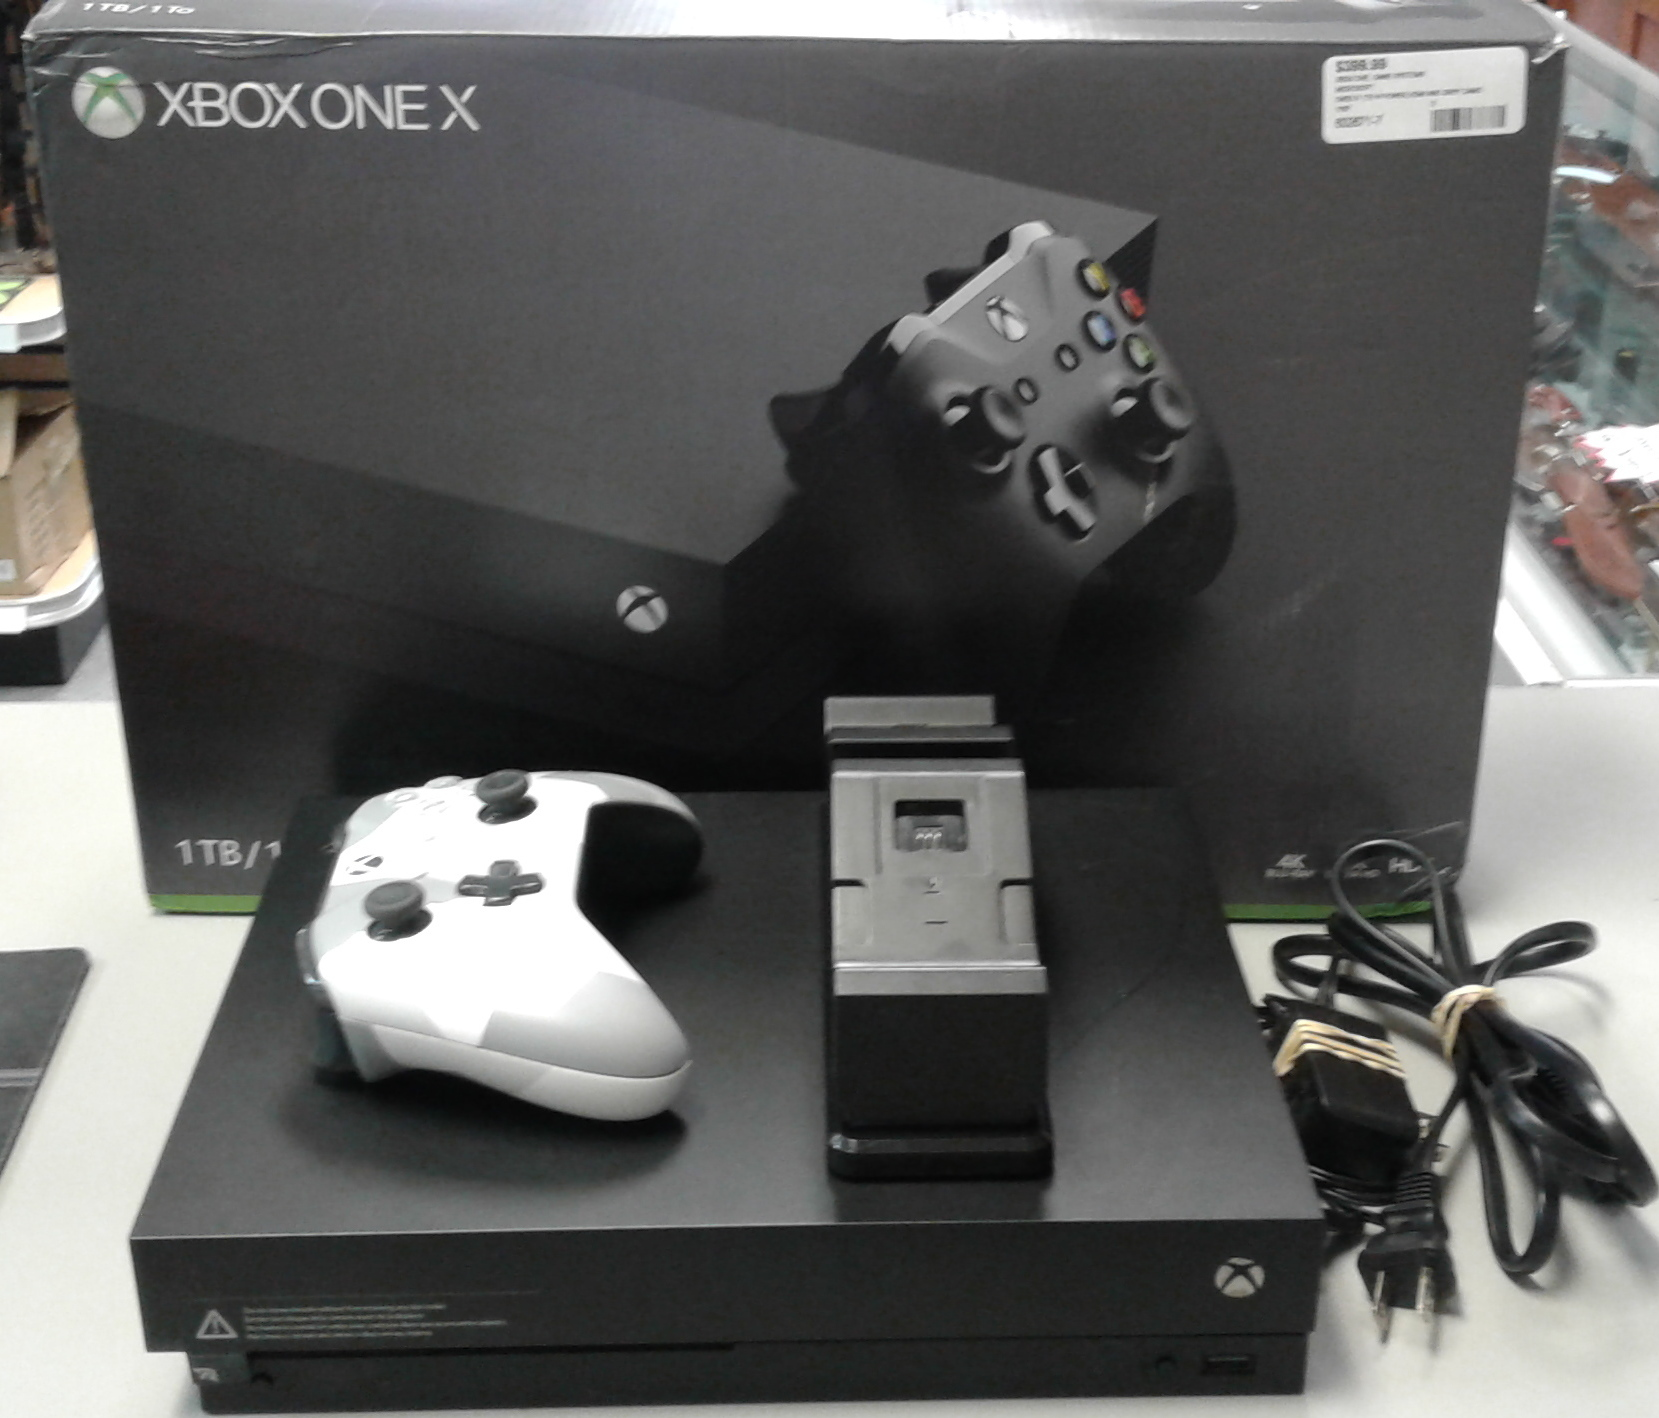 MICROSOFT 1787 XBOX ONE X GAME SYSTEM